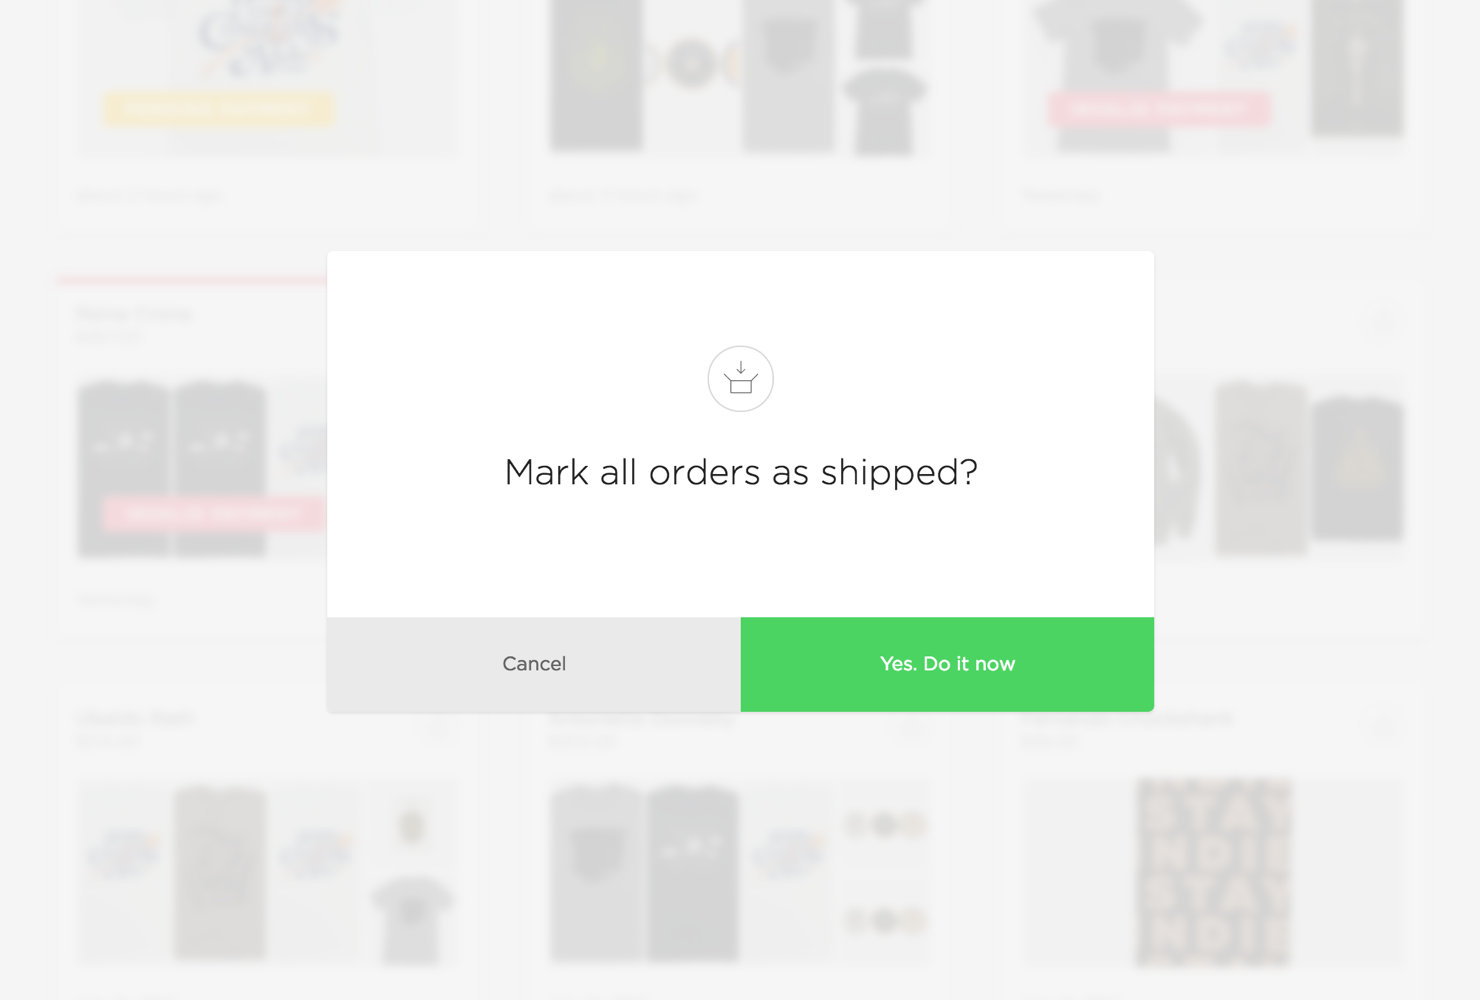 orders-mark-shipped